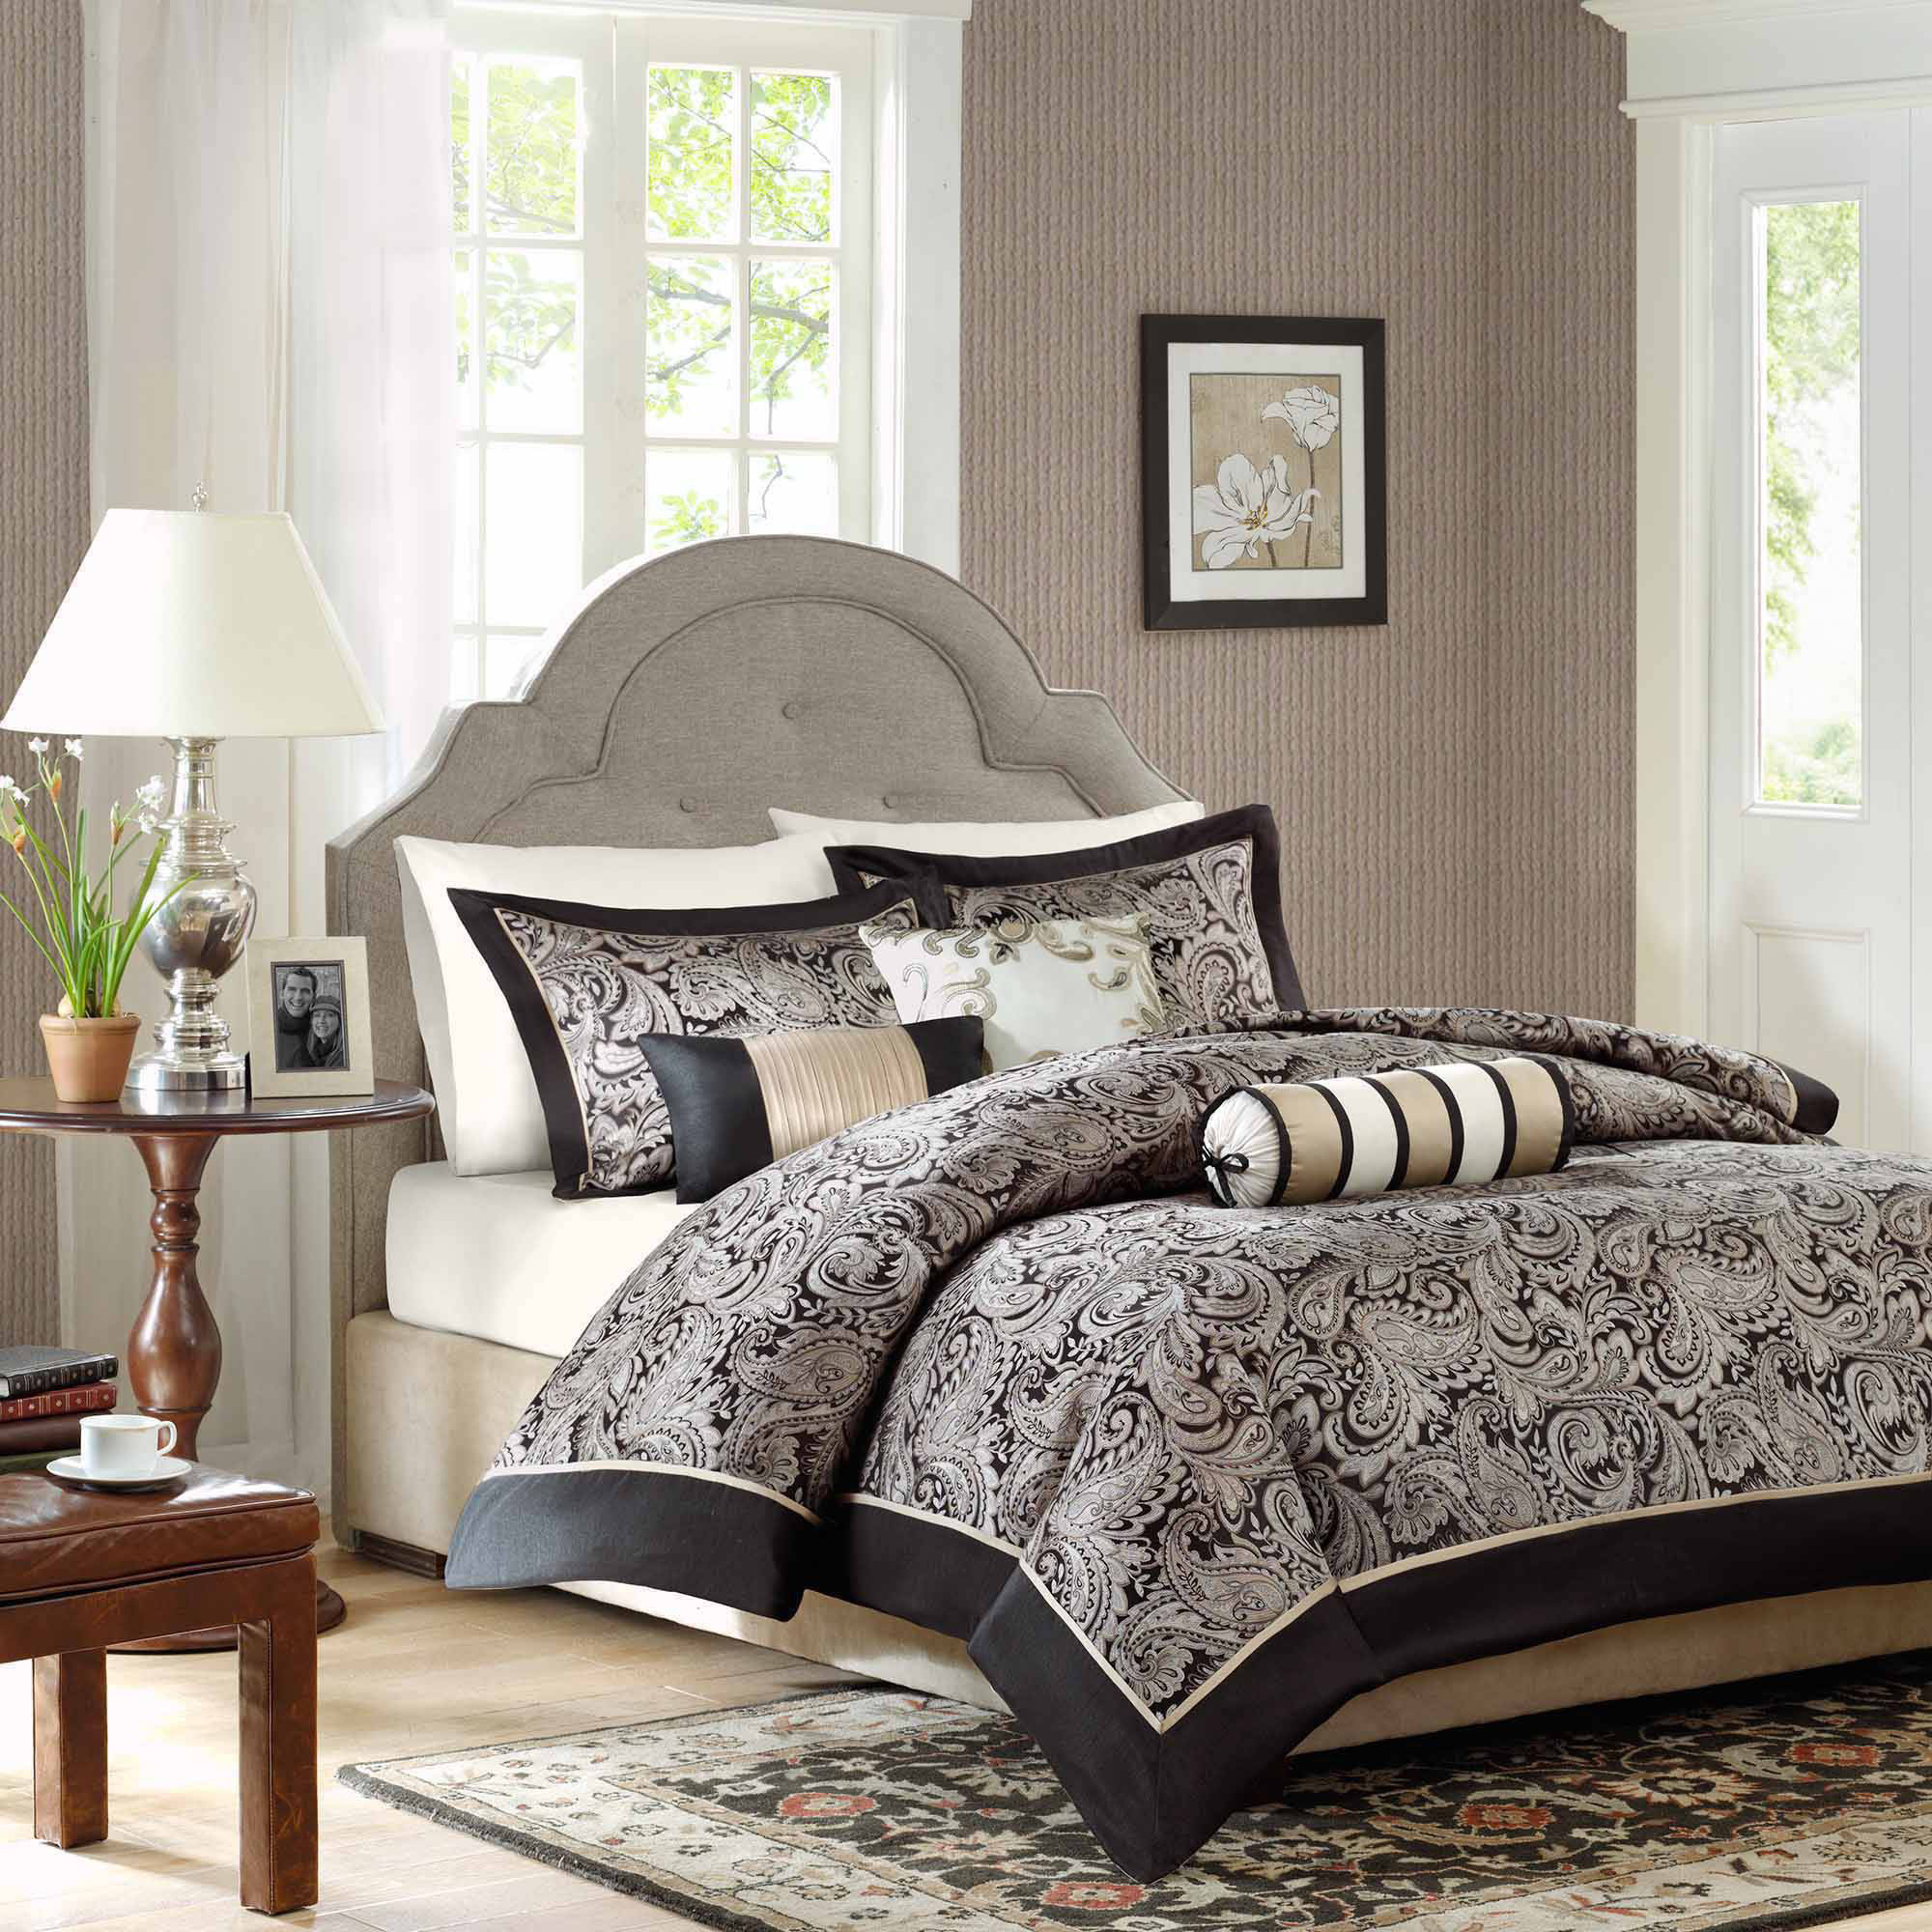 surya cover cfm master by evelyn set product piece hayneedle duvet